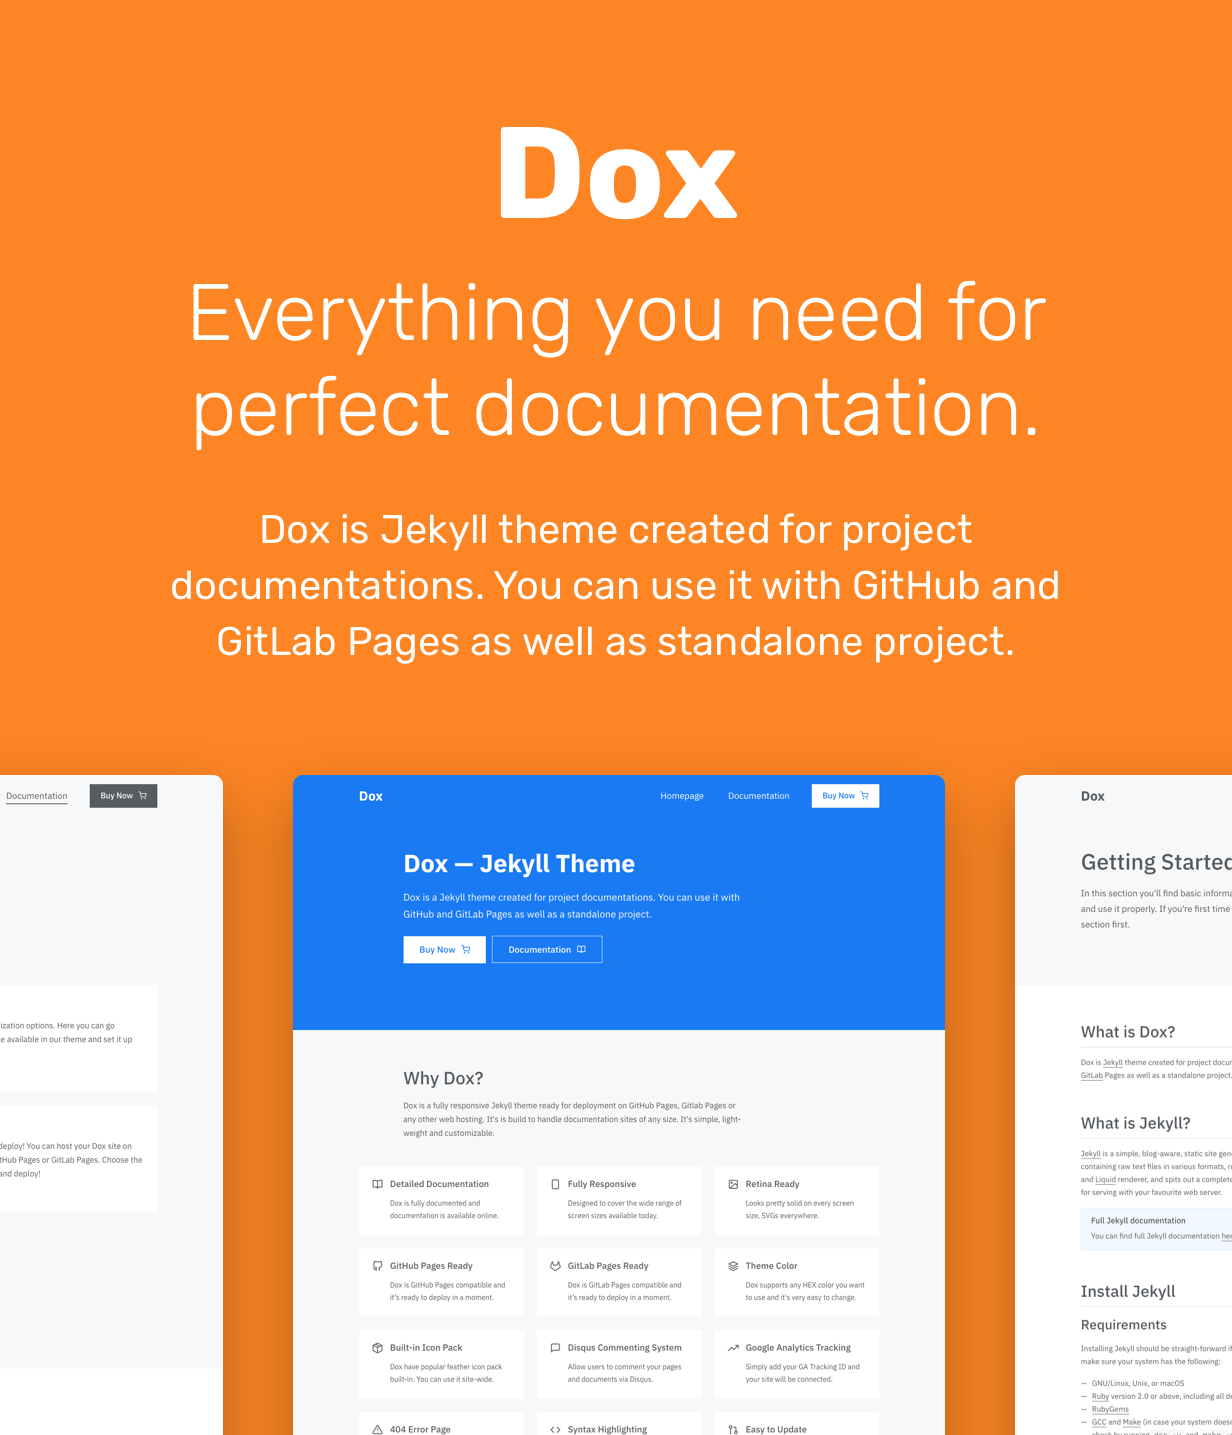 Dox is a Jekyll theme created for project documentations